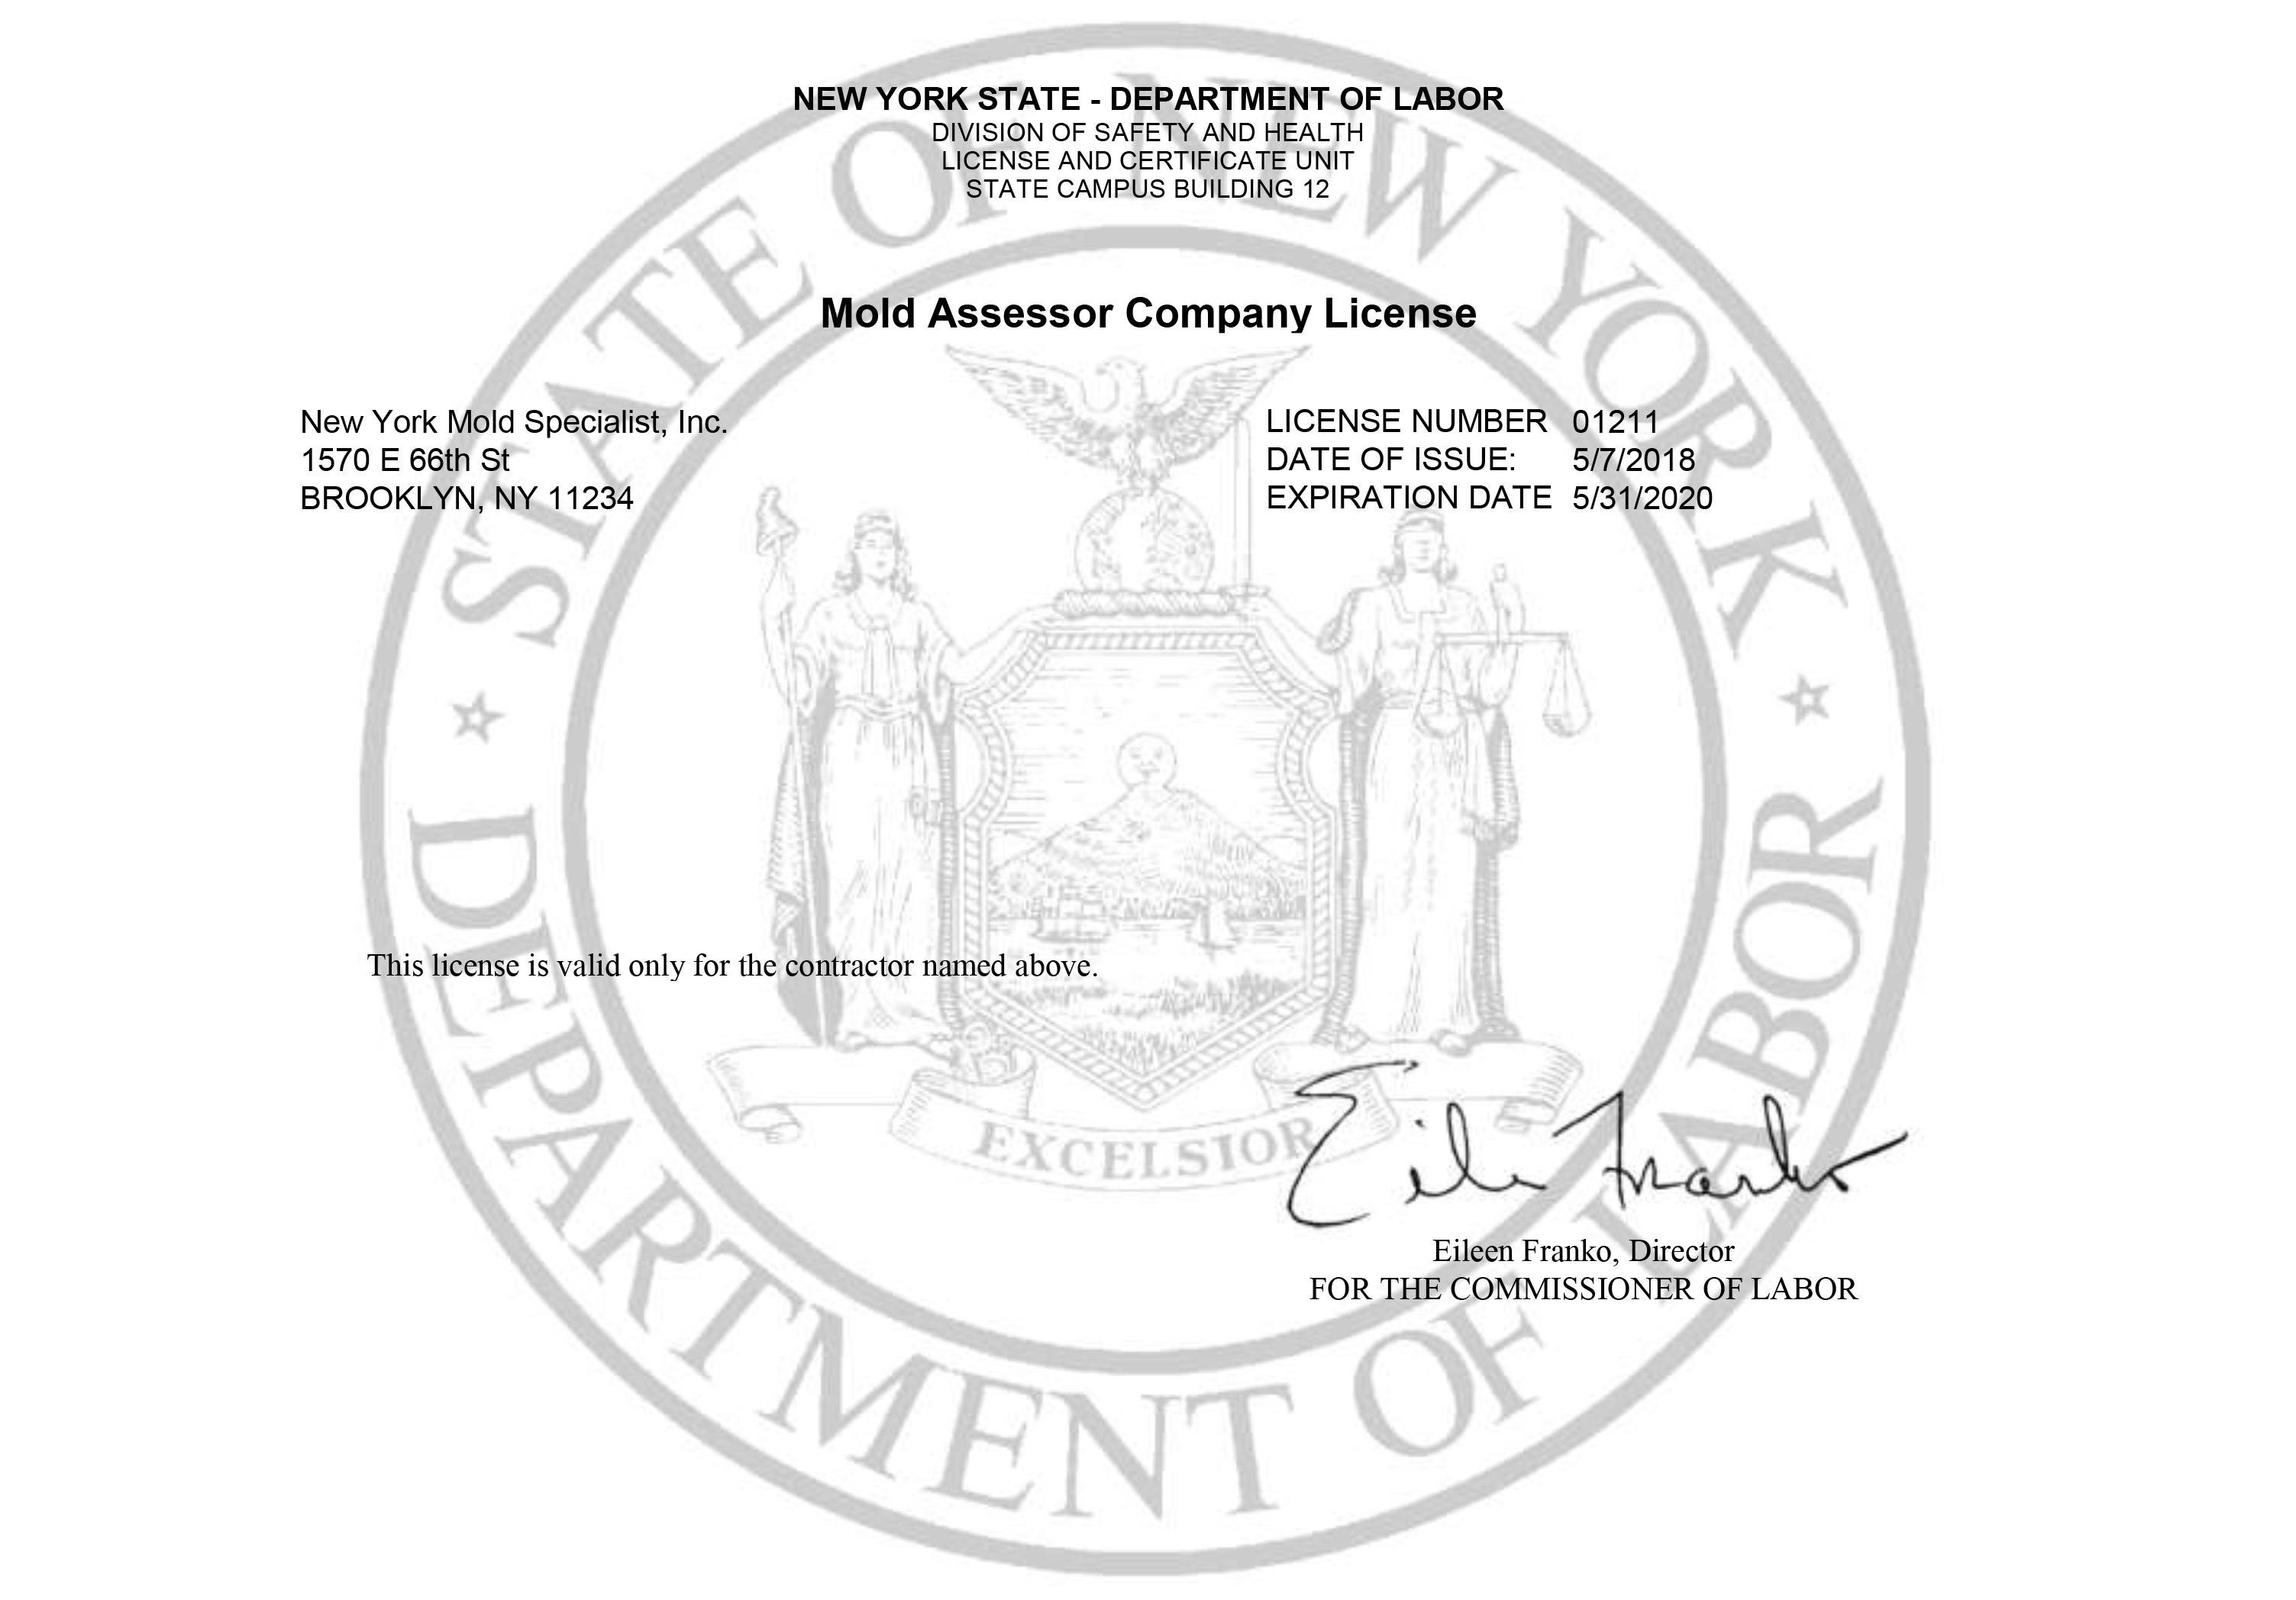 Mold Assessor Company License